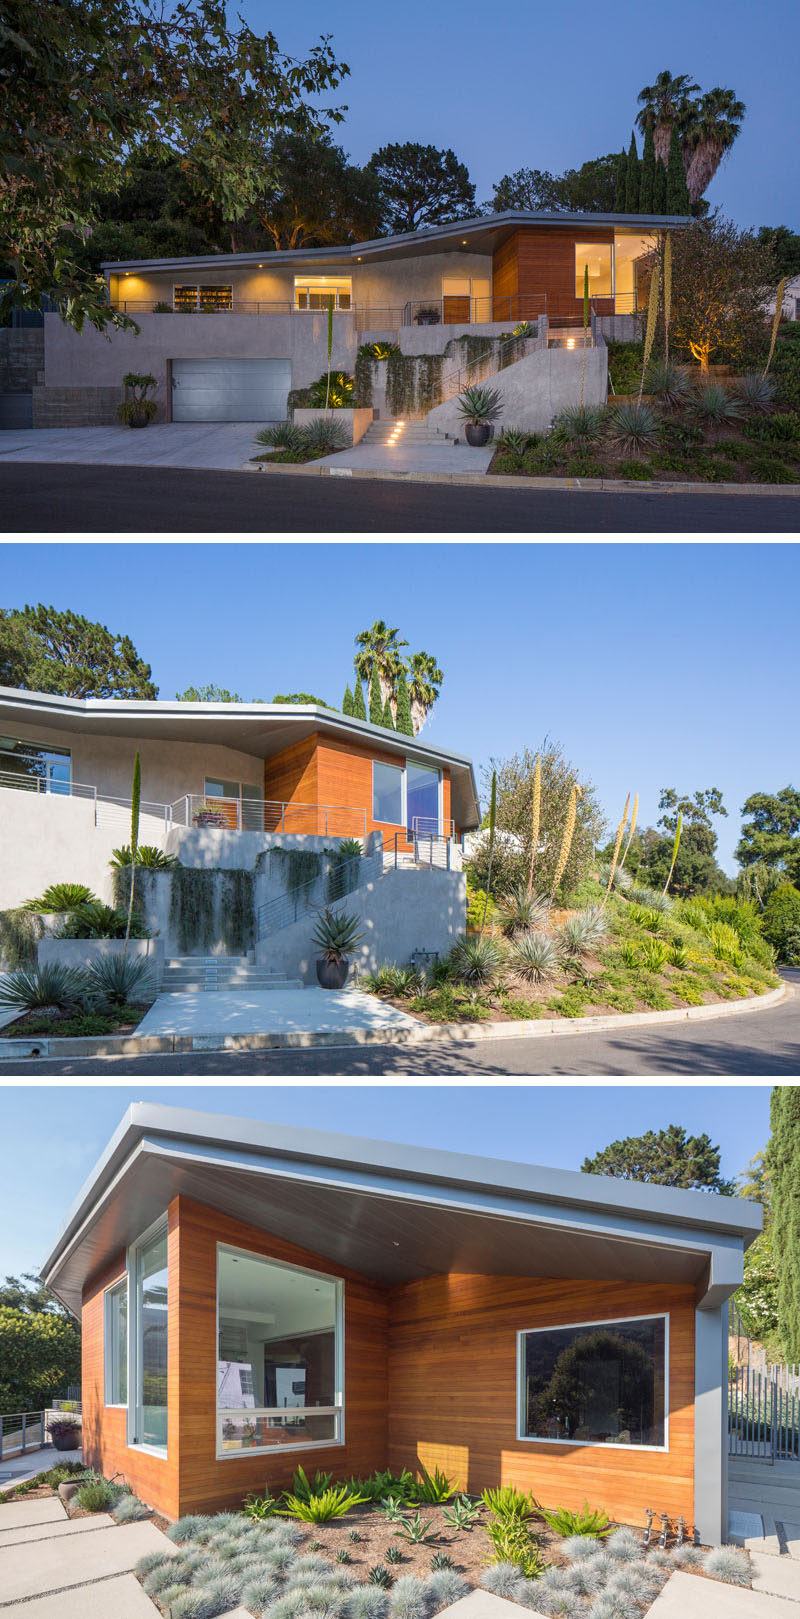 ANX (Aaron Neubert Architects, Inc.) have designed a new house that sits on a hill in the Bel-Air neighborhood of Los Angeles, California. #ContemporaryHouse #Architecture